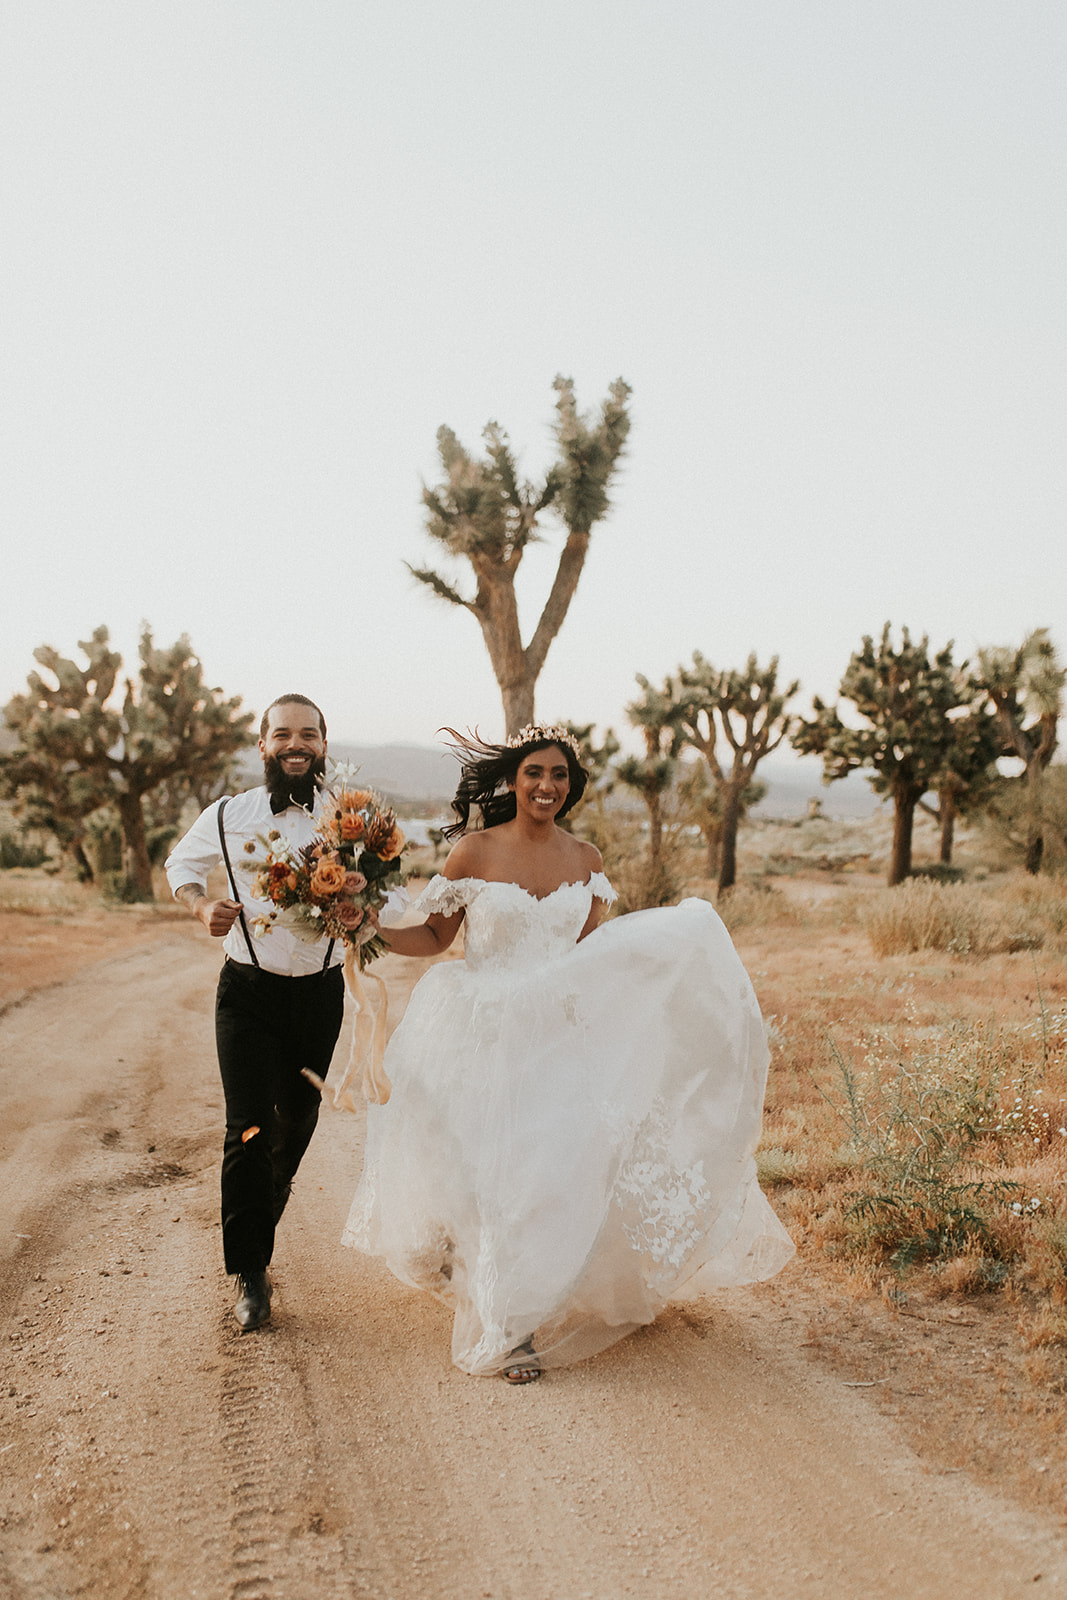 Joshua_Tree_Elopement_Hannah_Alena_Photography-226.jpg